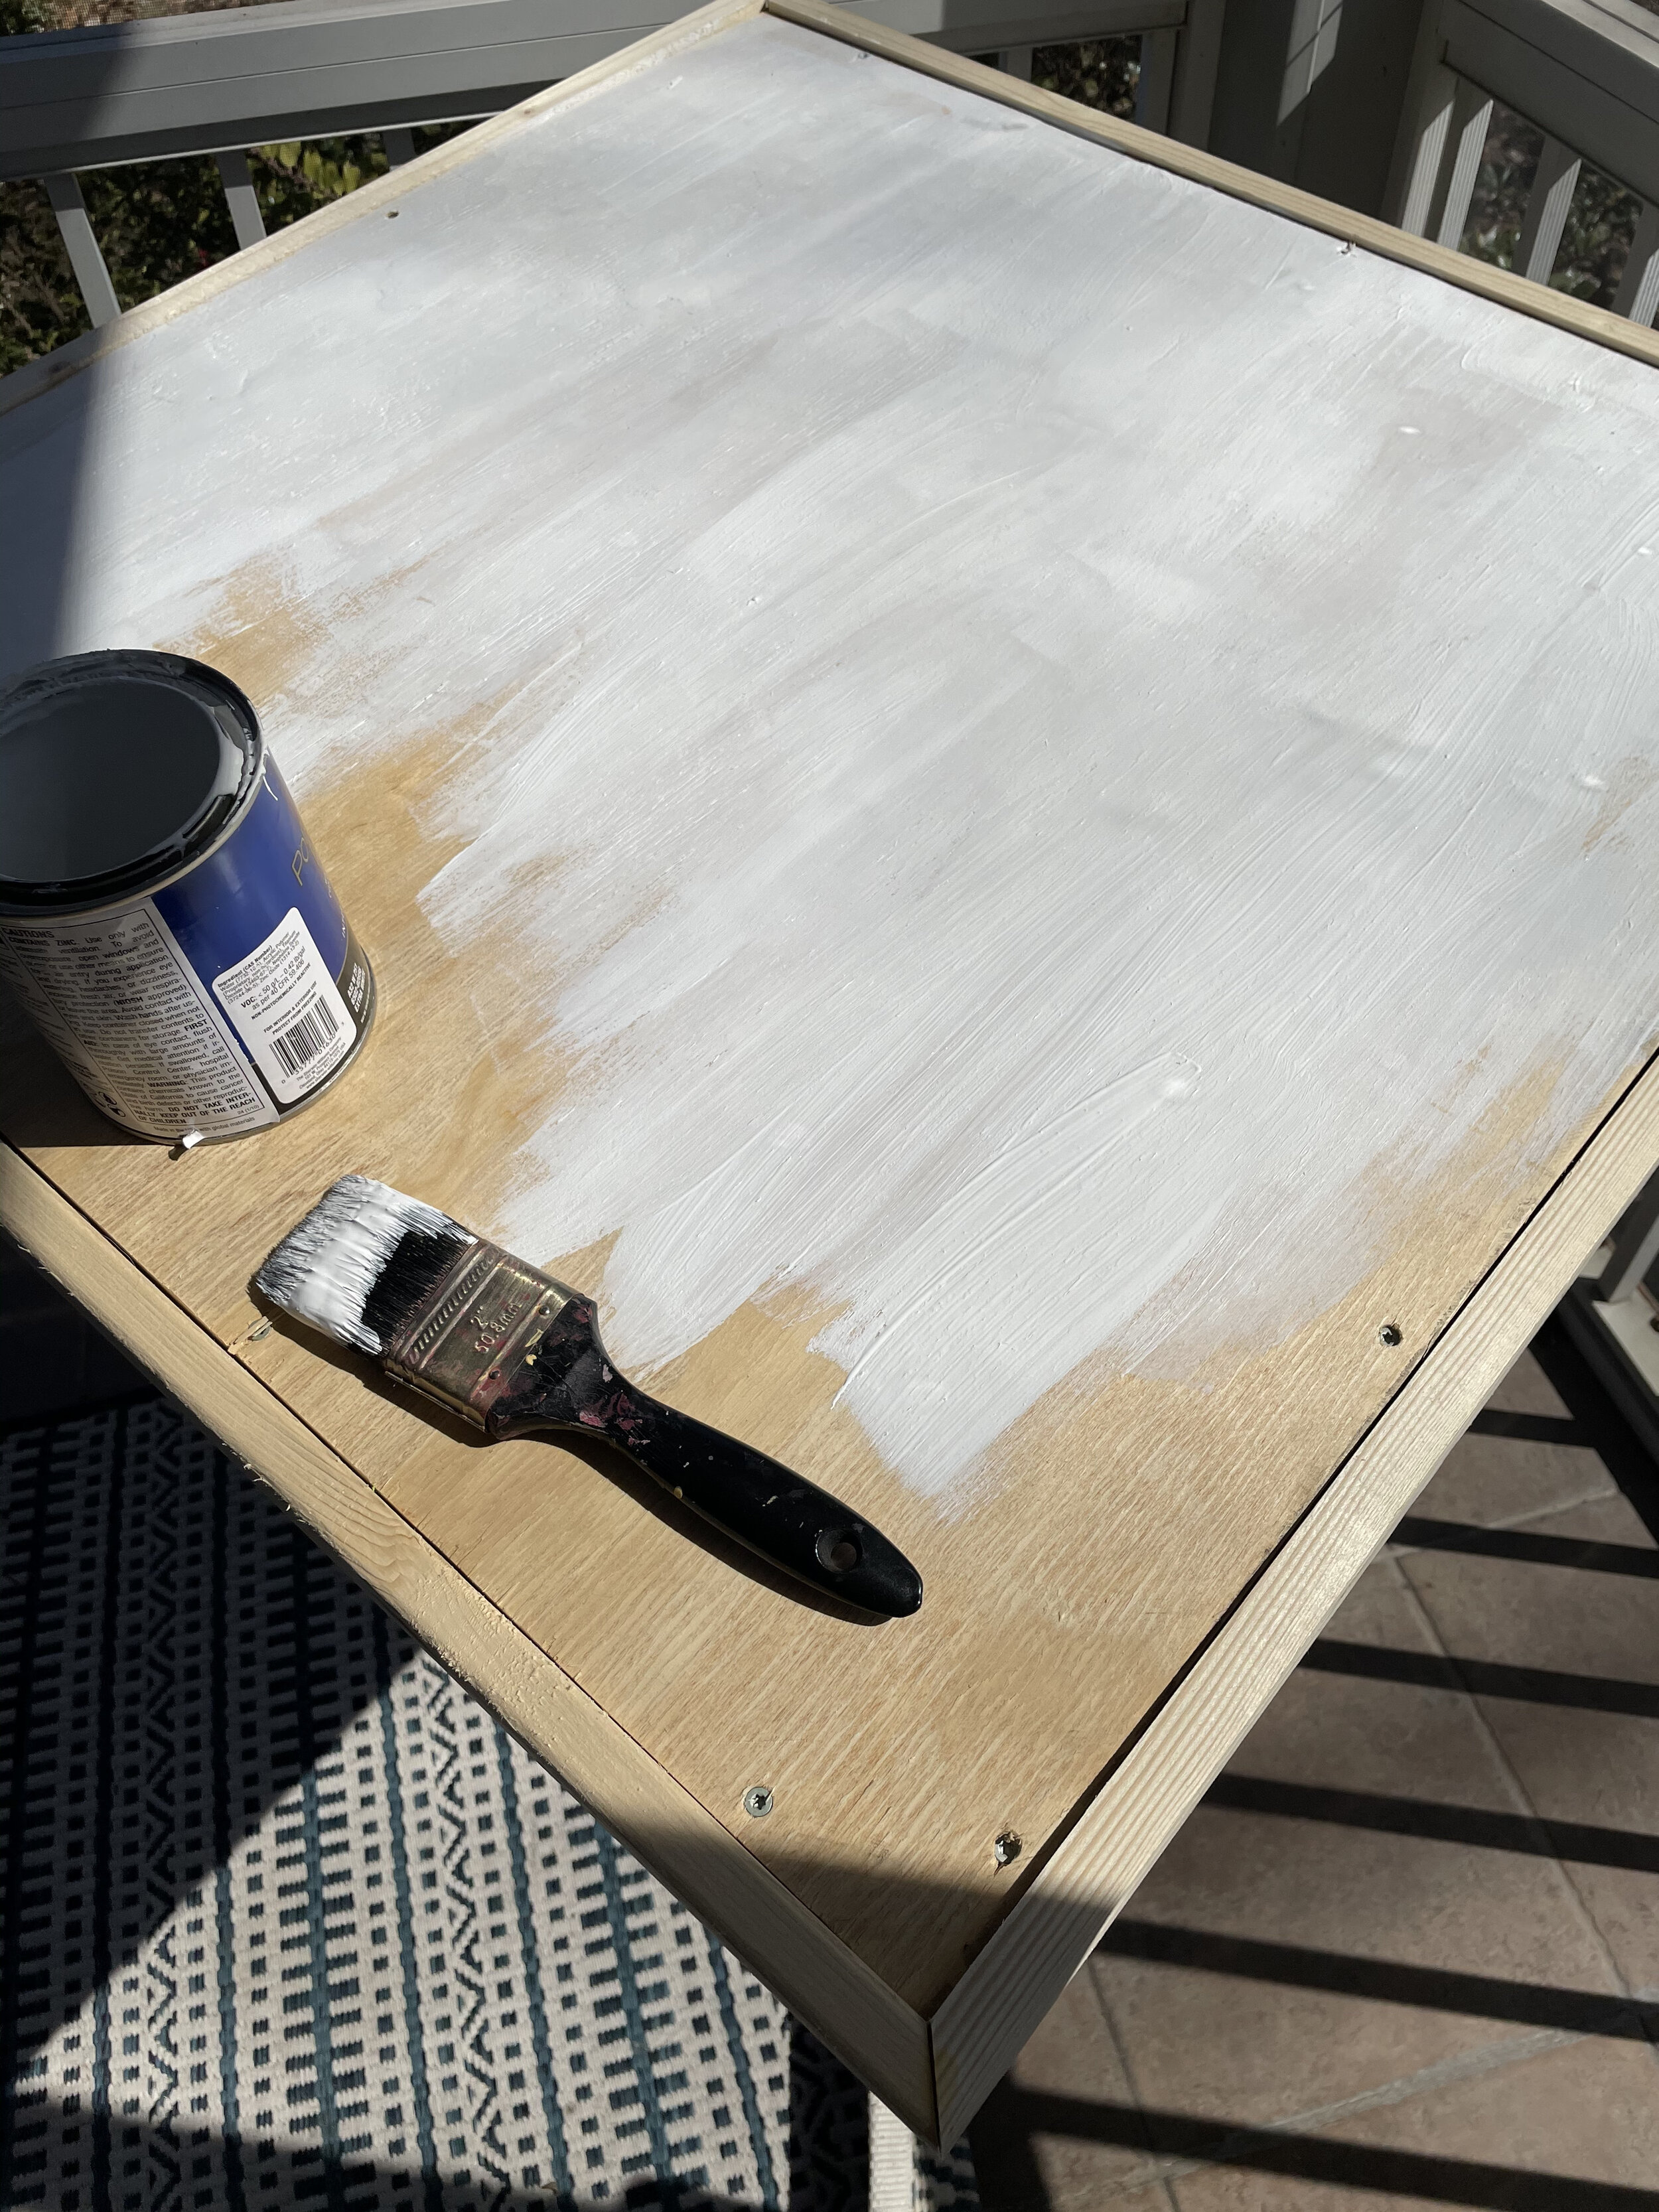 Painting a checkerboard pattern